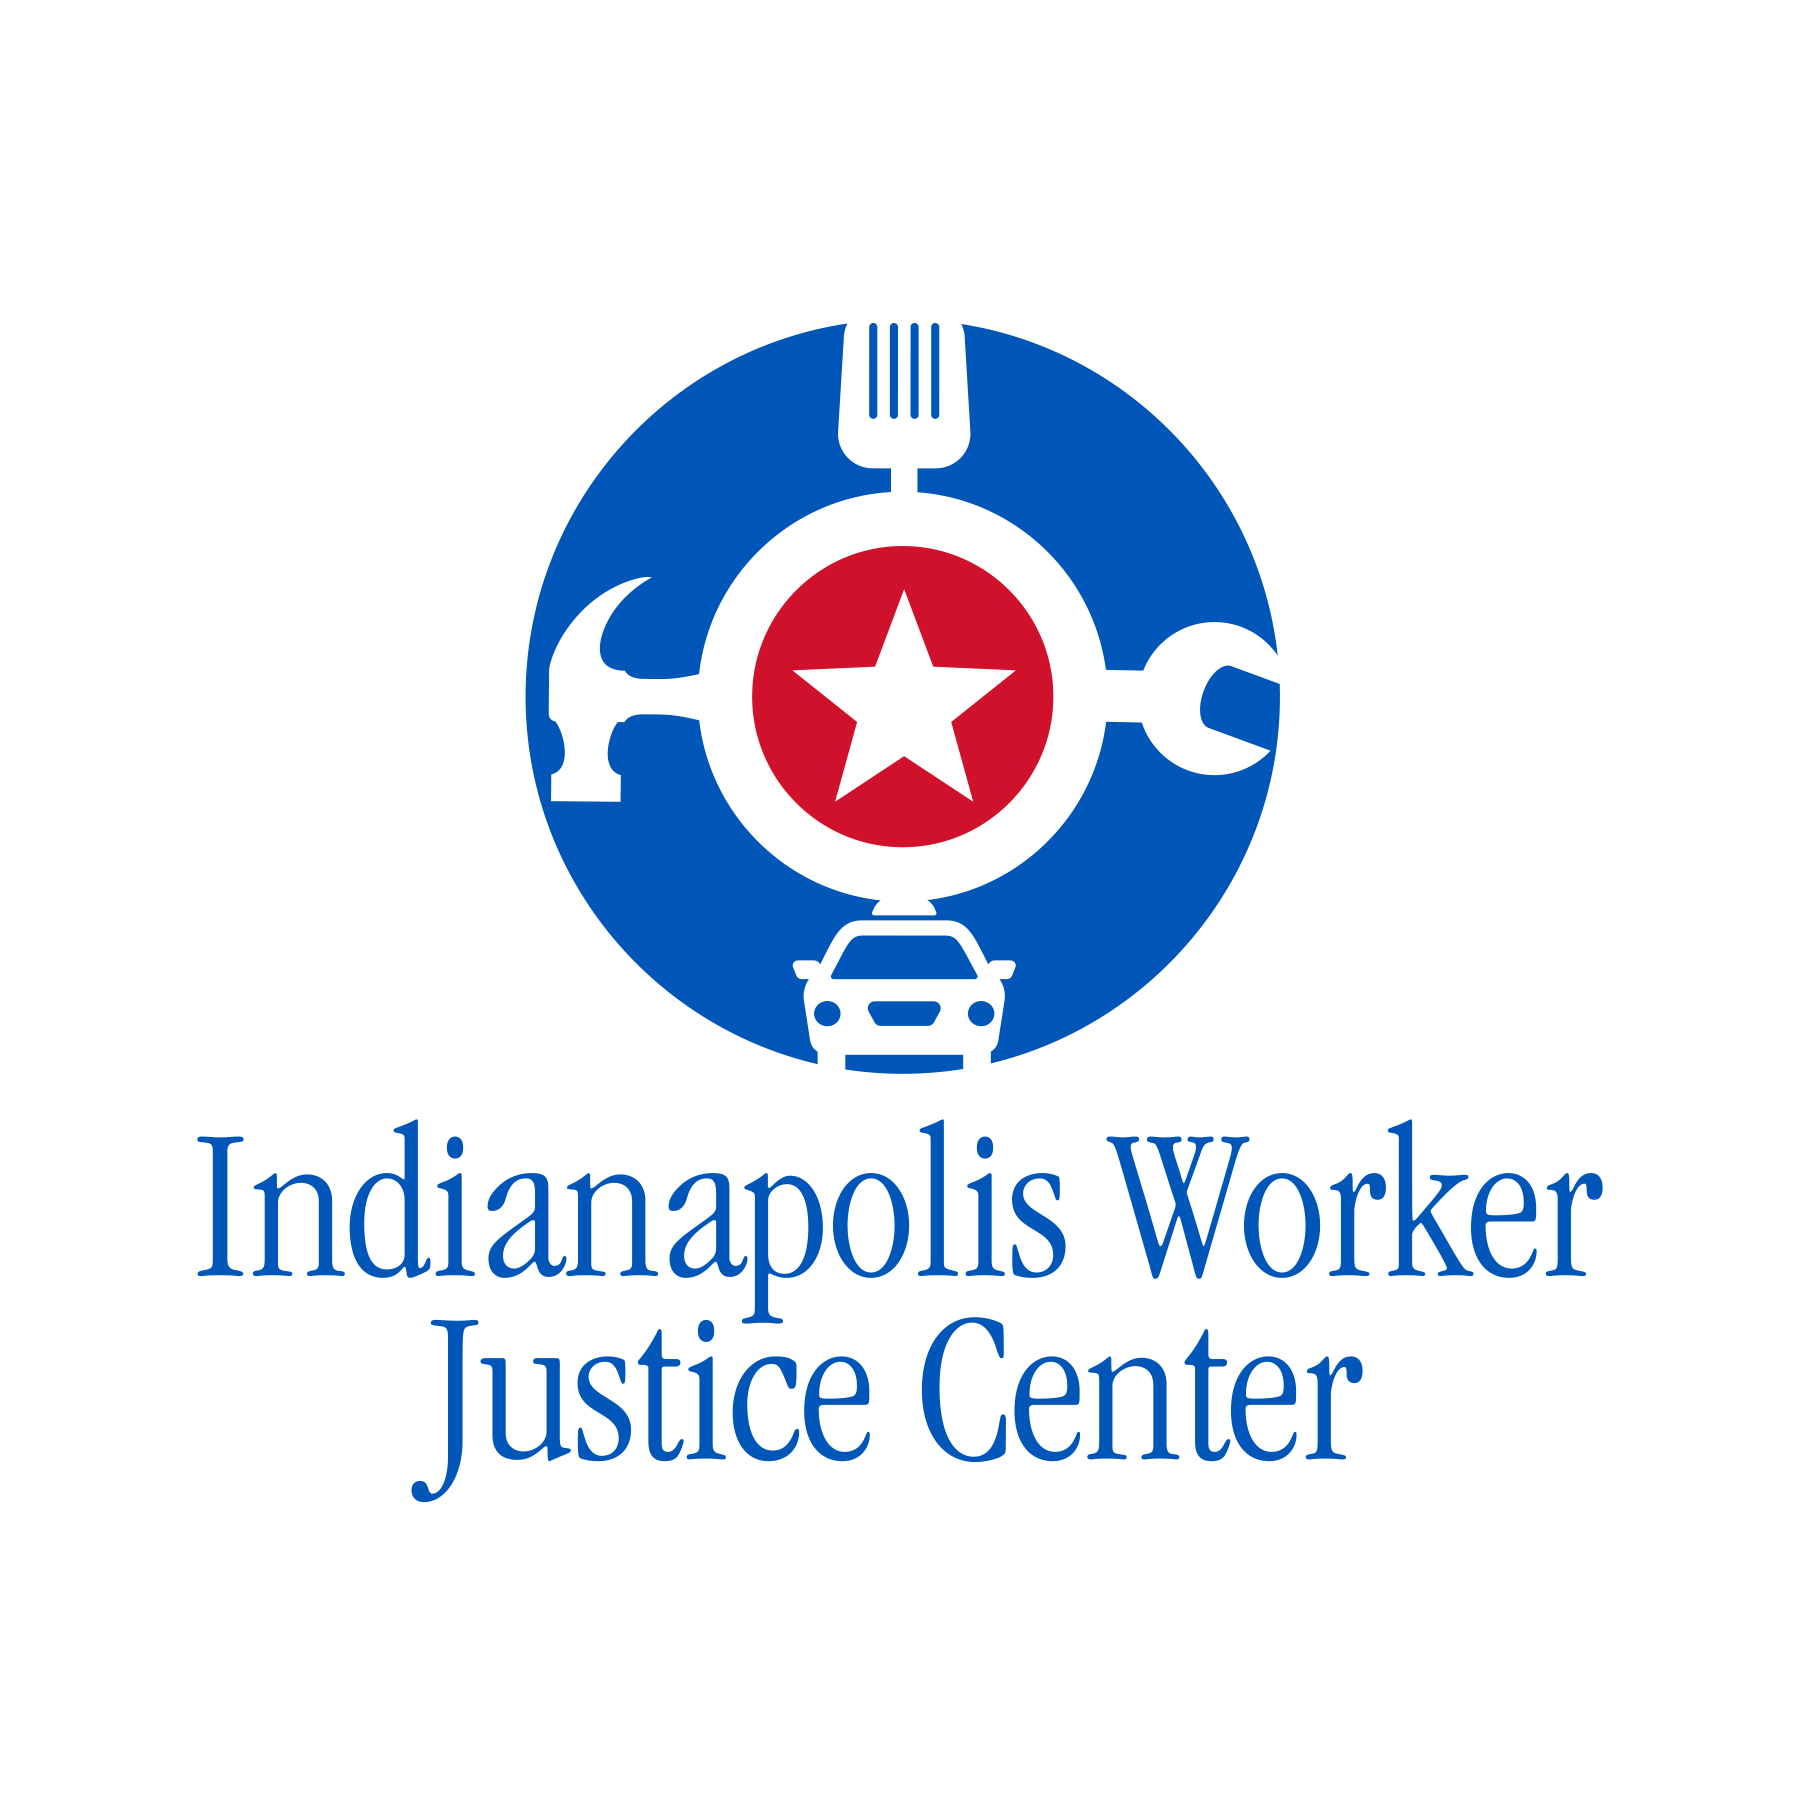 Indianapolis Workers Justice Center